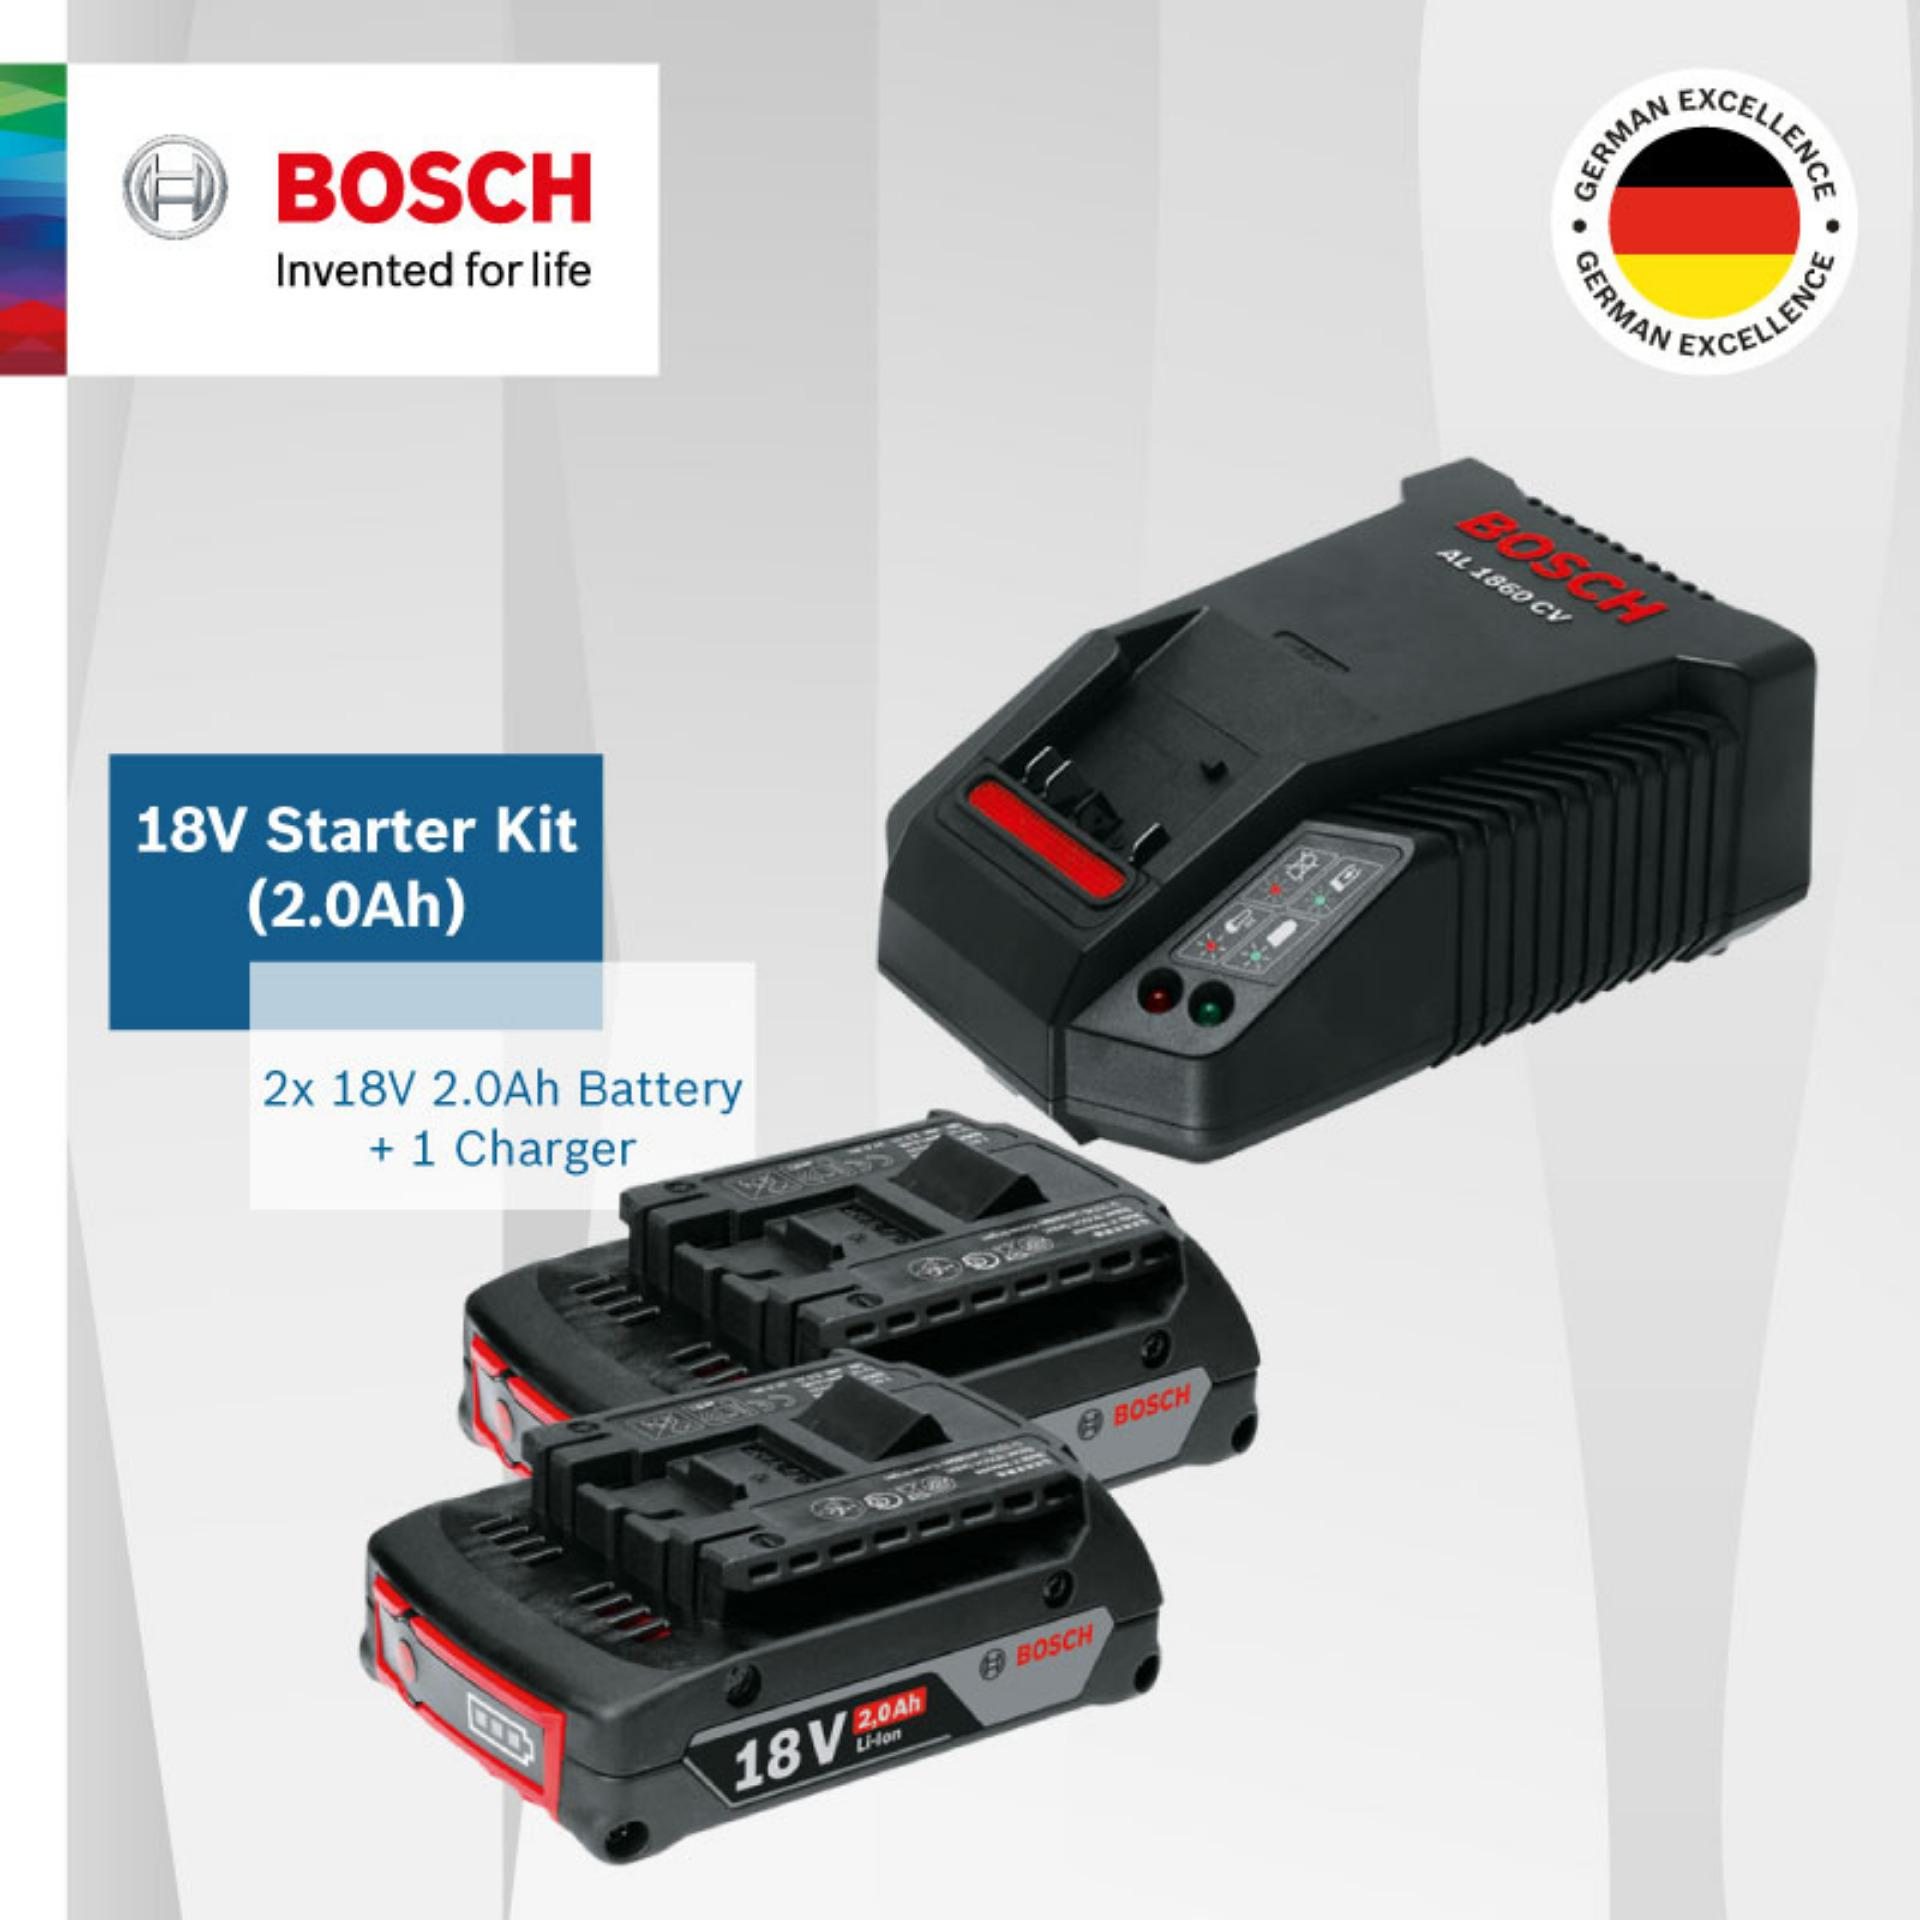 Buy Bosch 18V 2 0Ah Starter Kit Come With 2 X Li Ion 18V Batteries And 1 X Charger Al1860Cv Fast Charge Up To 75 Within 15 Min Online Singapore